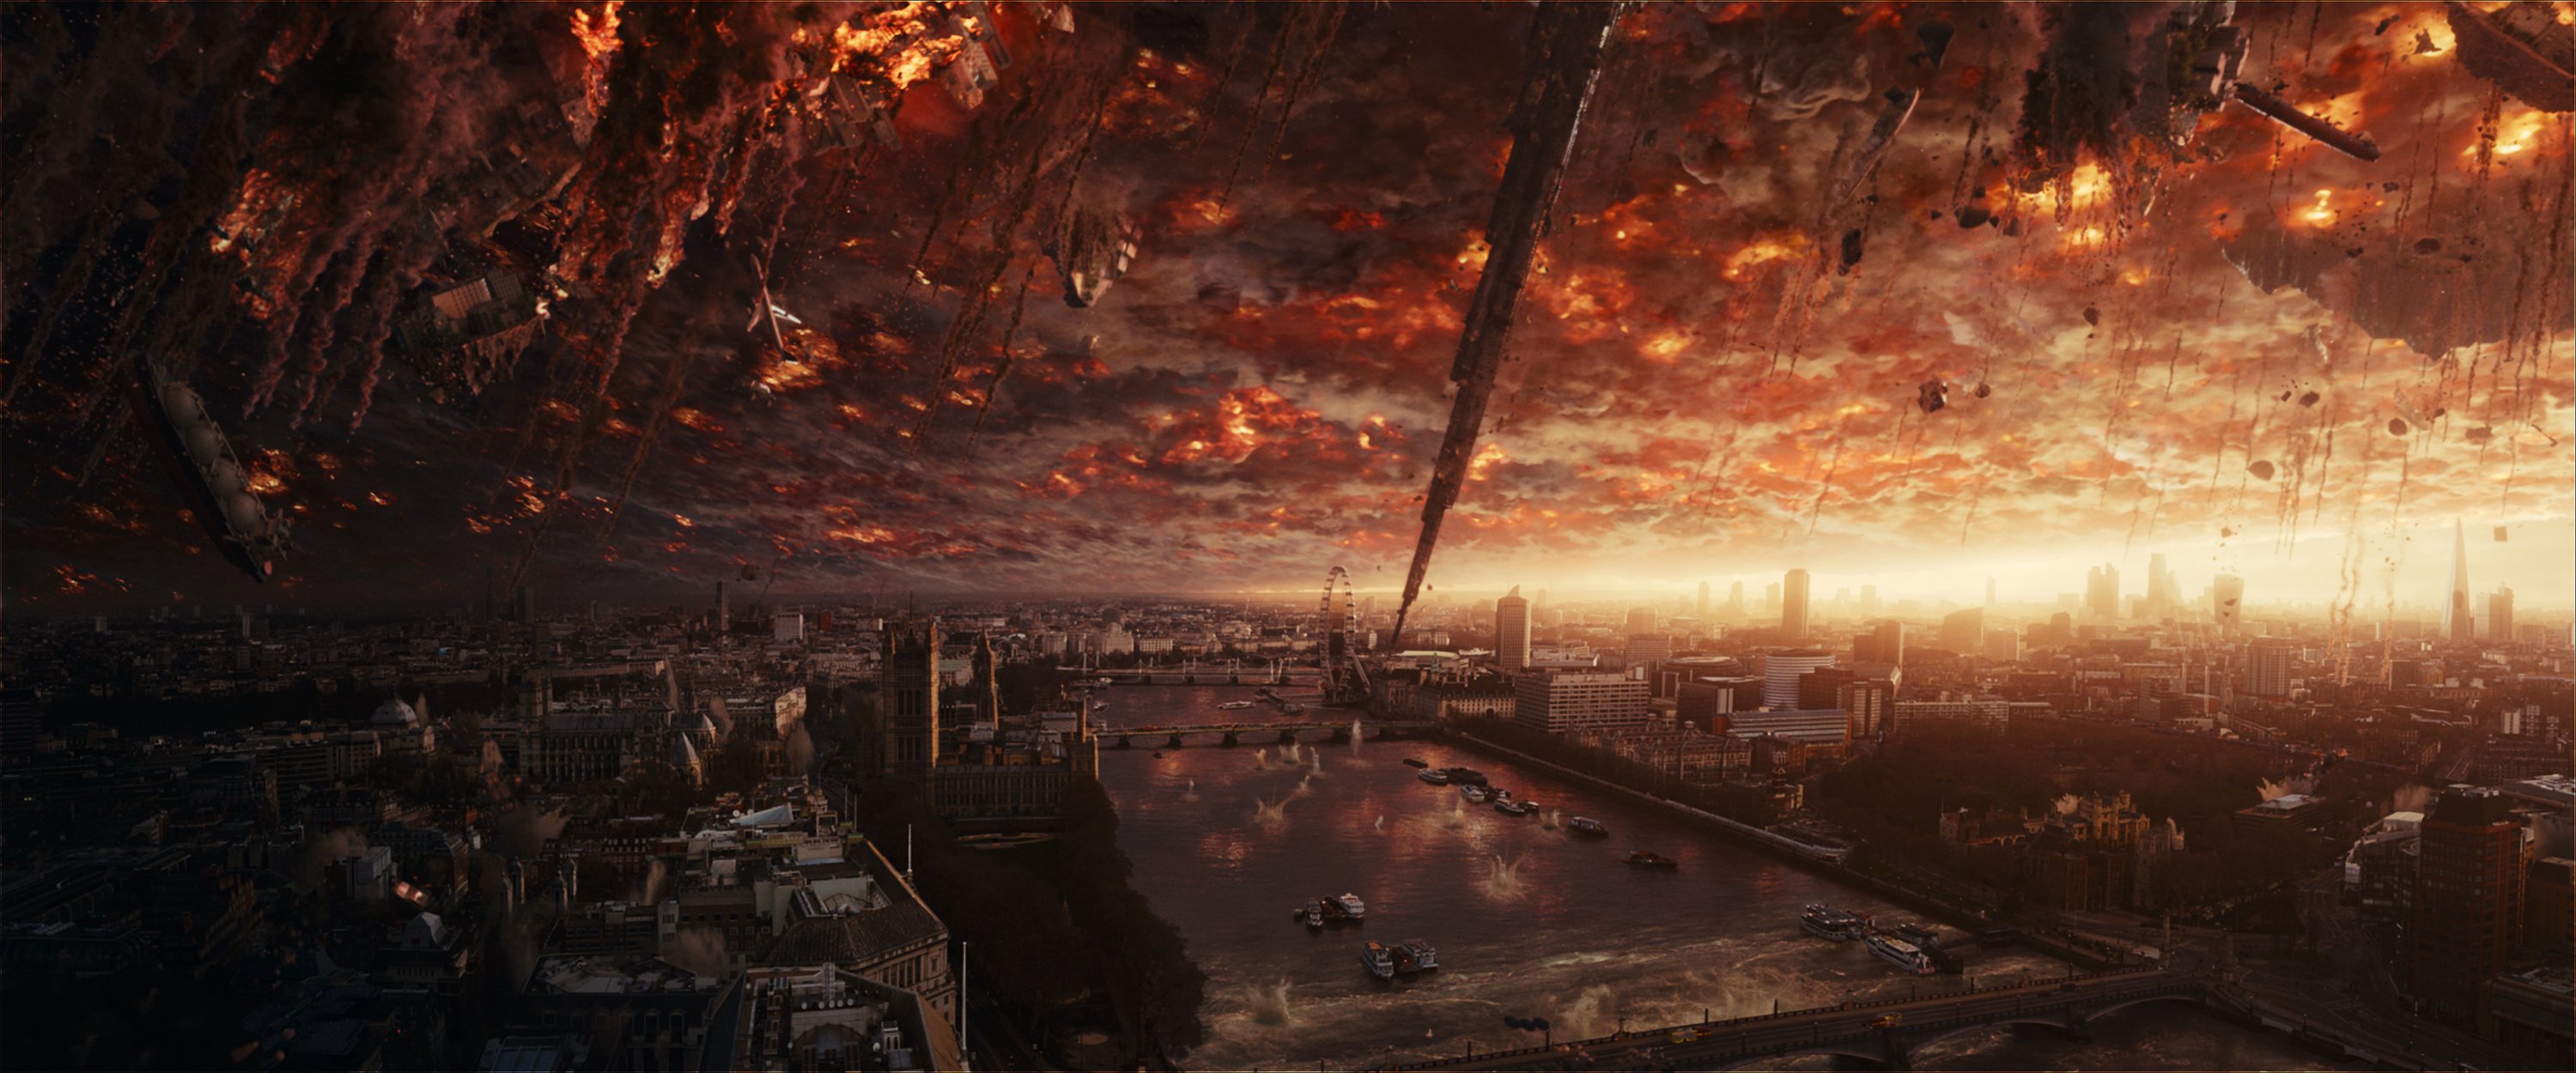 Earth's New Battle Against Aliens: Photos from 'Independence Day: Resurgence'